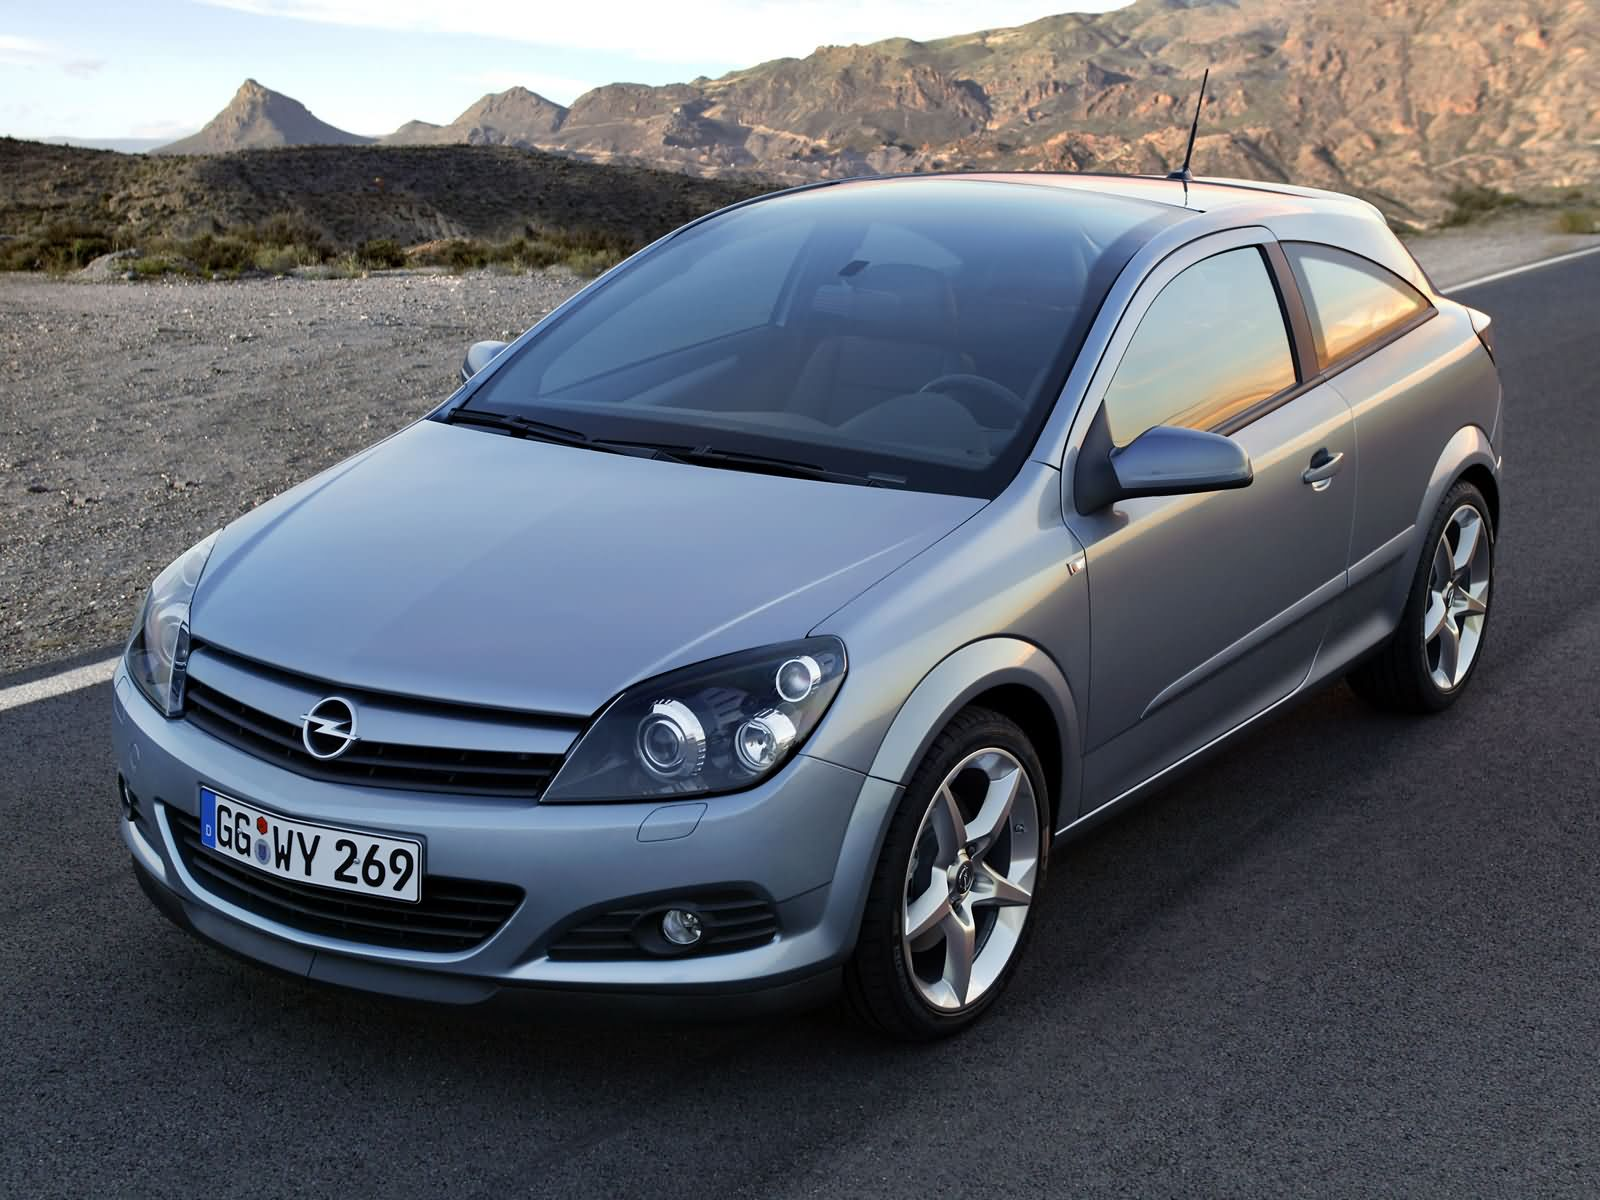 opel astra h gtc 2005 opel astra h gtc 2005 photo 10 car. Black Bedroom Furniture Sets. Home Design Ideas